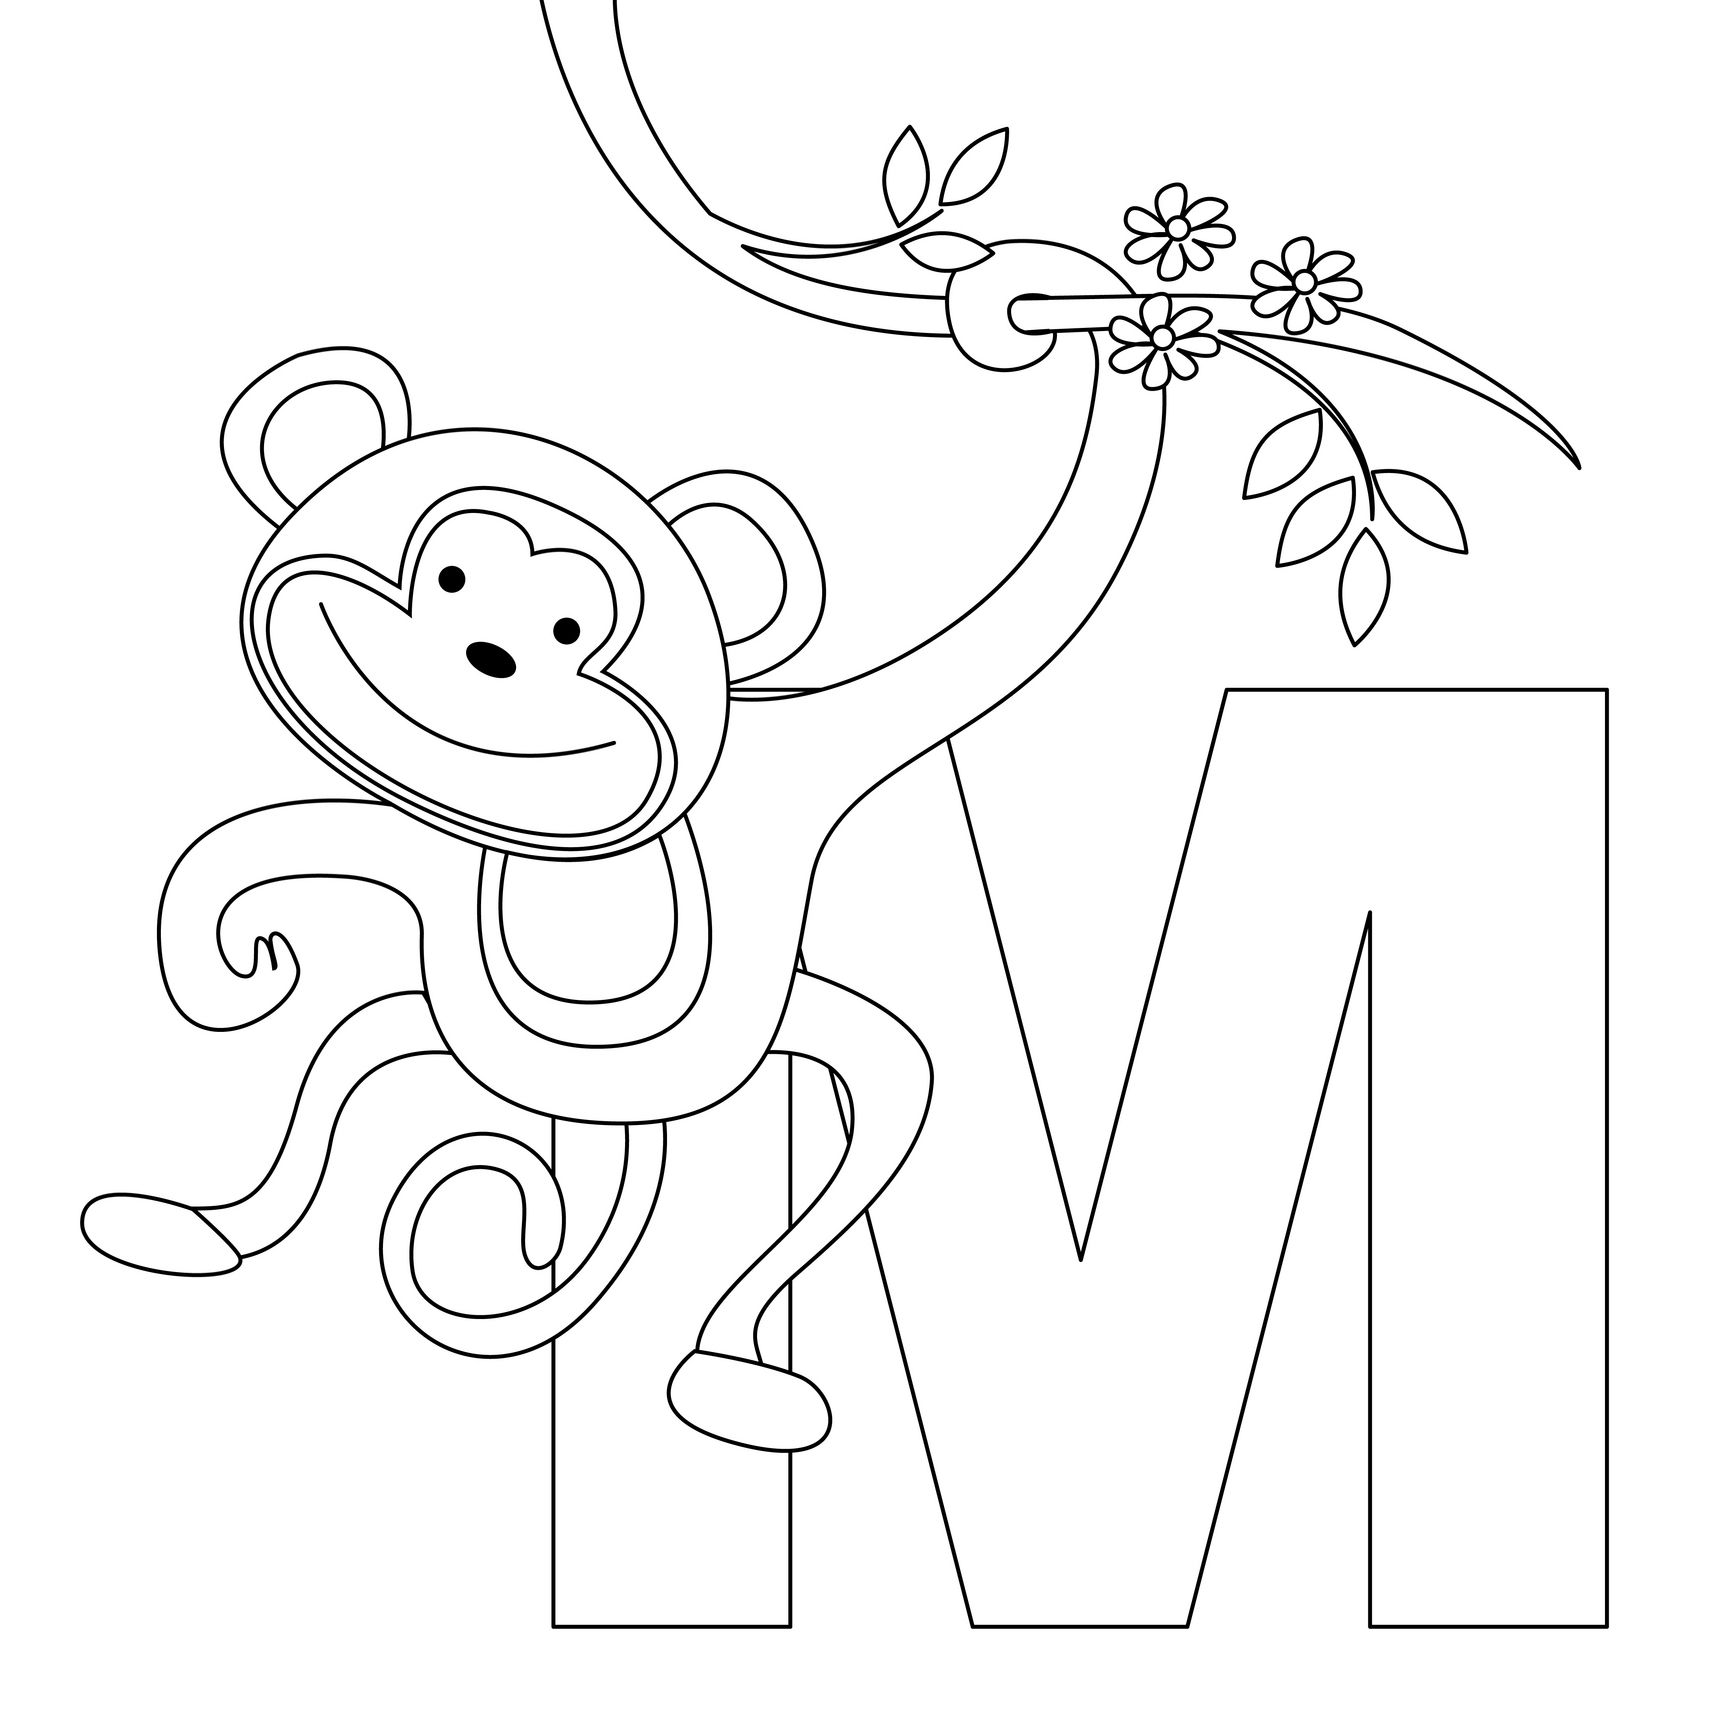 Animal Alphabet Coloring Pages Printable : Animal alphabet letter m for monkey here s a simple